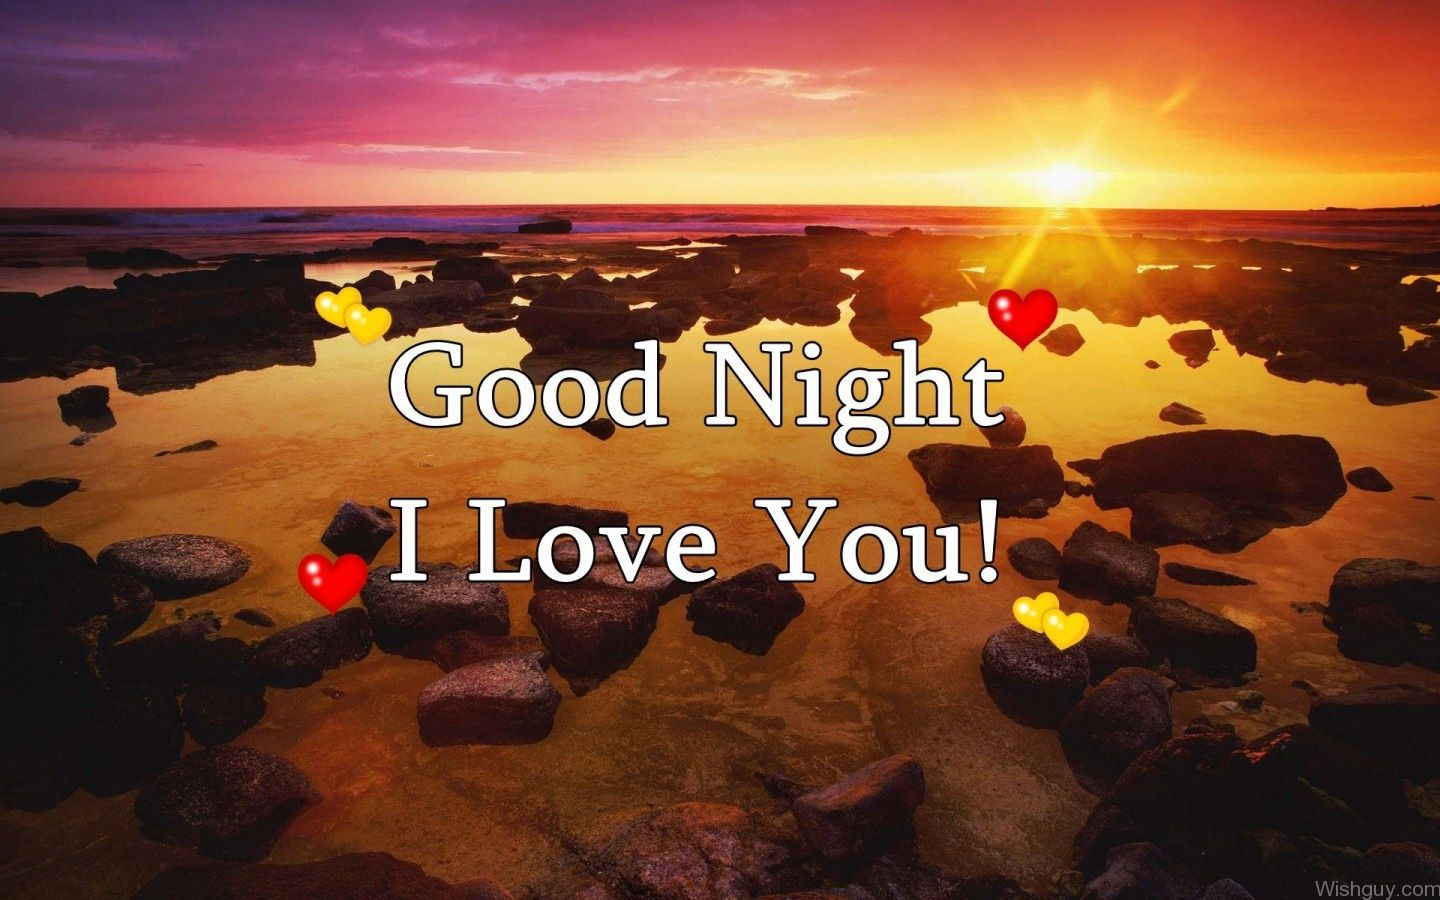 Good Night I Love You Images